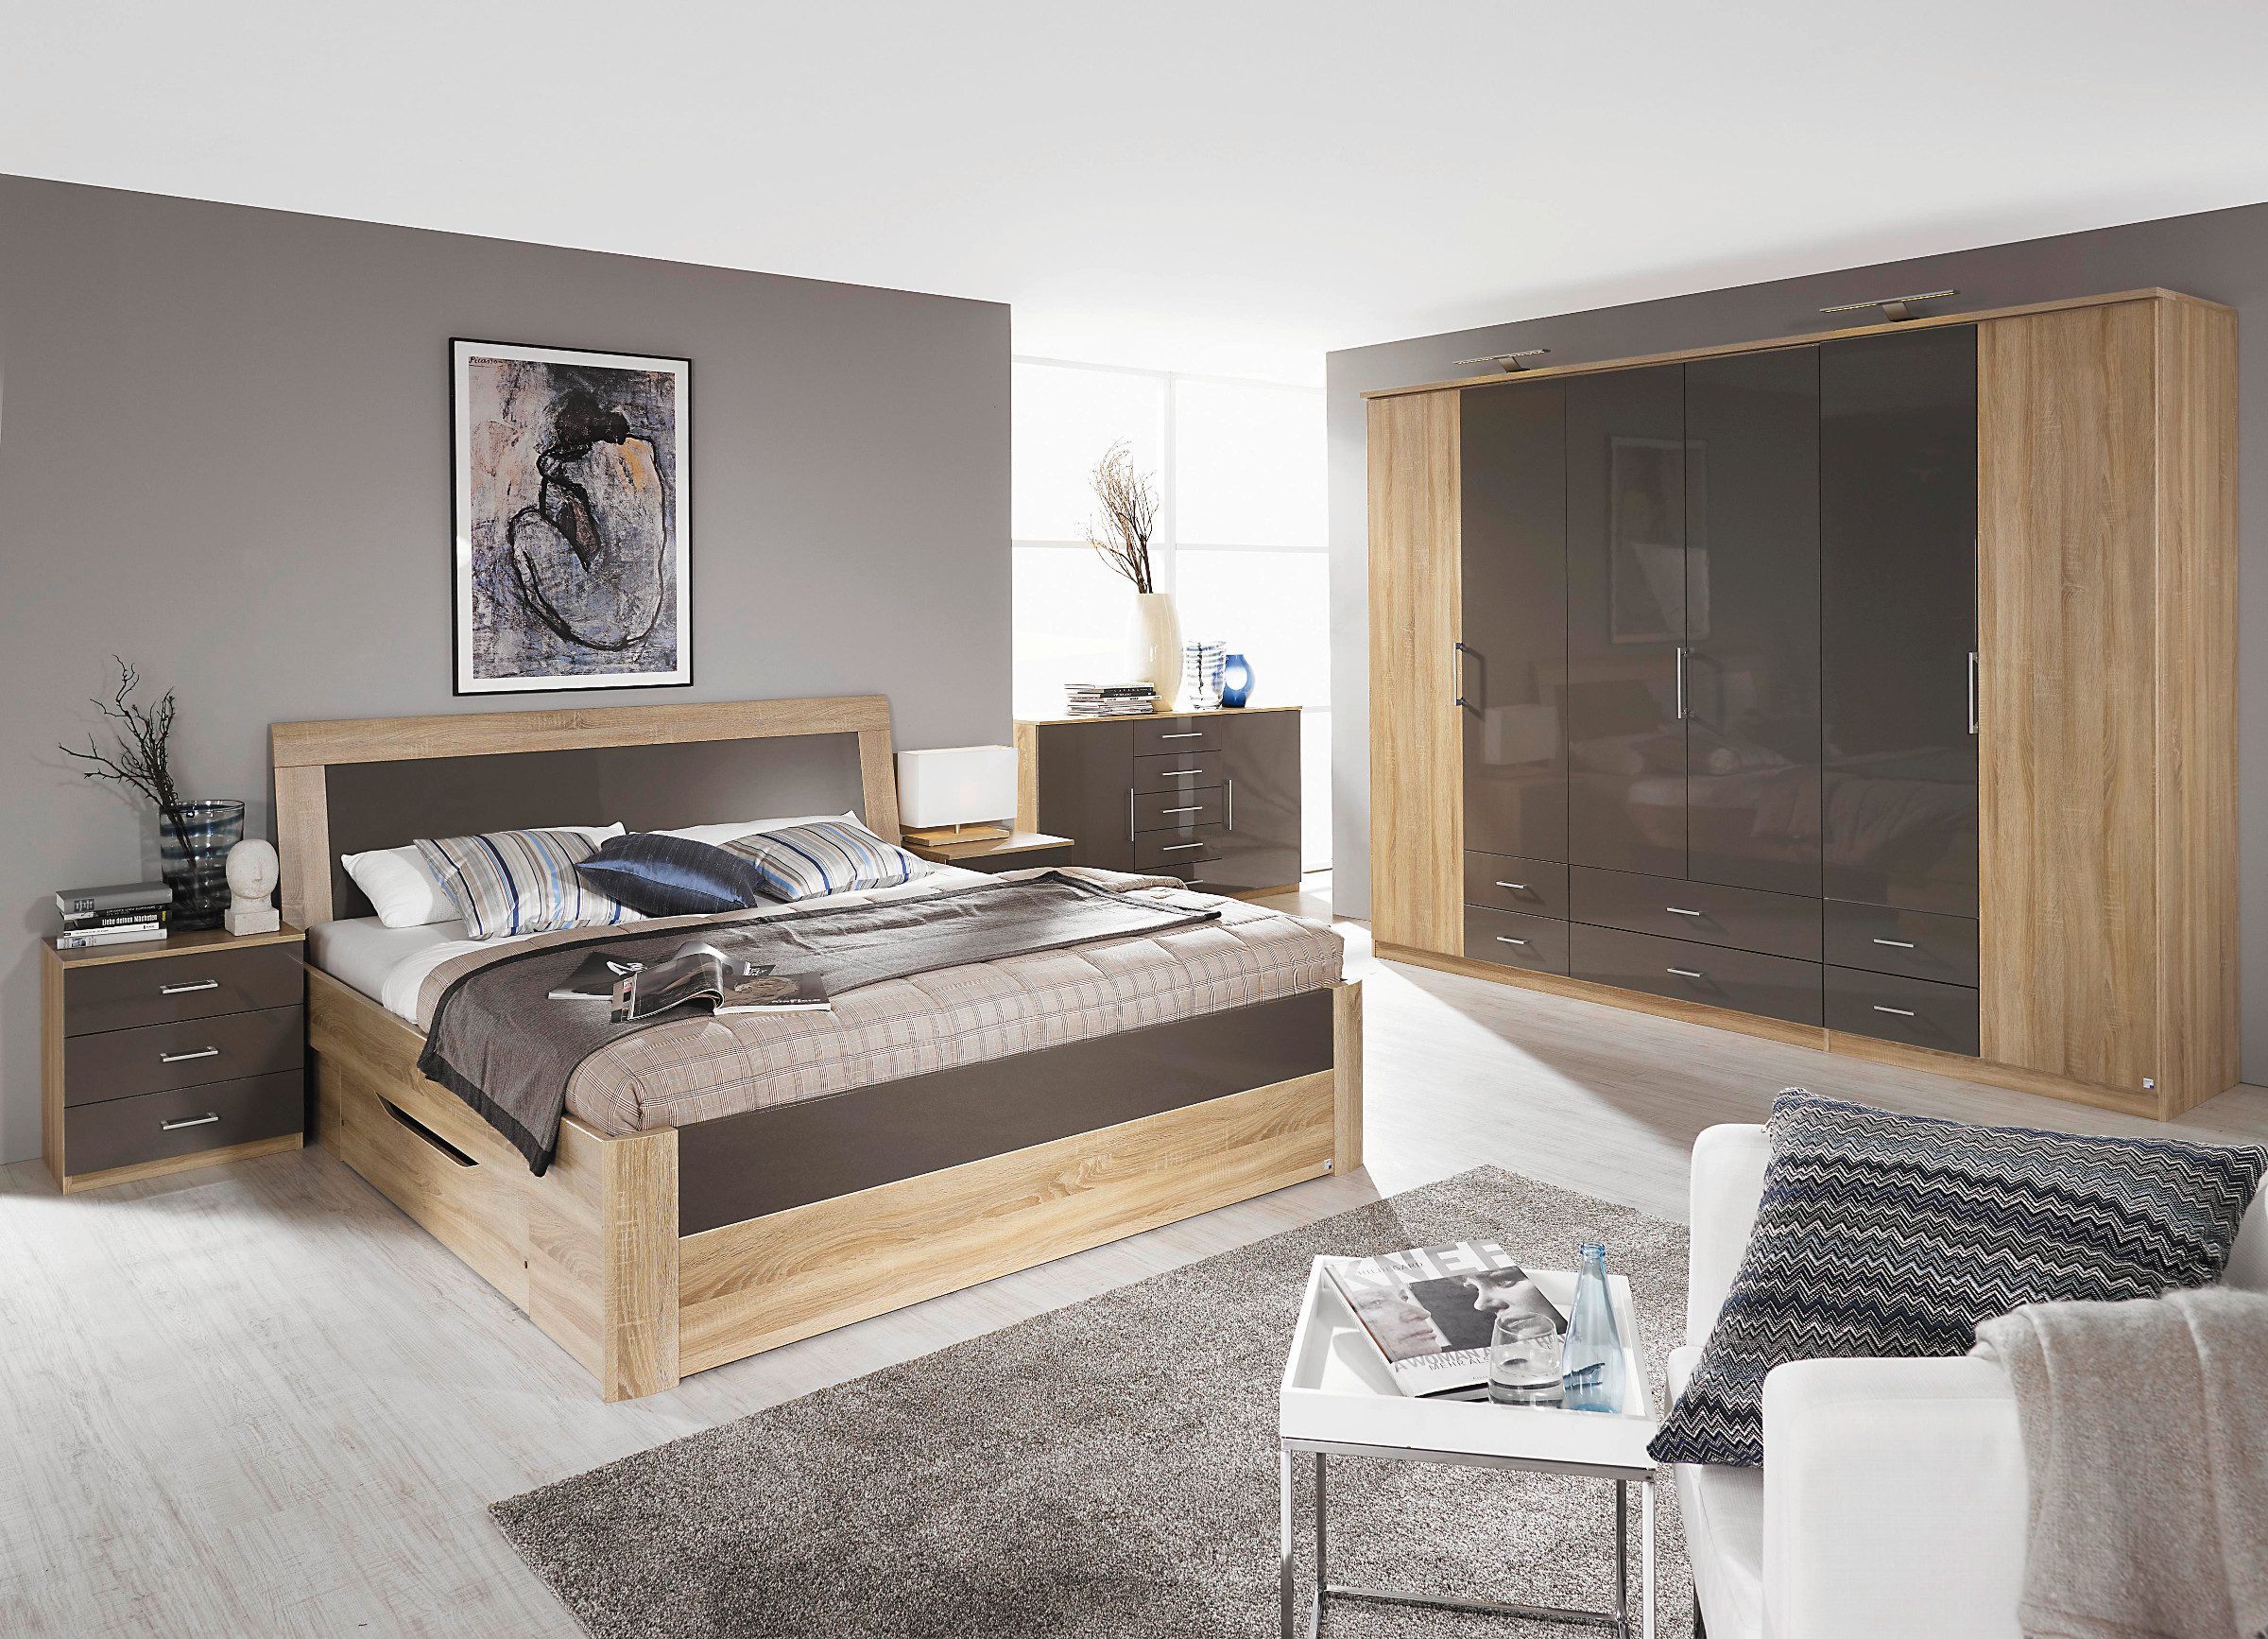 rauch schlafzimmer komplettangebot arona hochglanz ebay. Black Bedroom Furniture Sets. Home Design Ideas